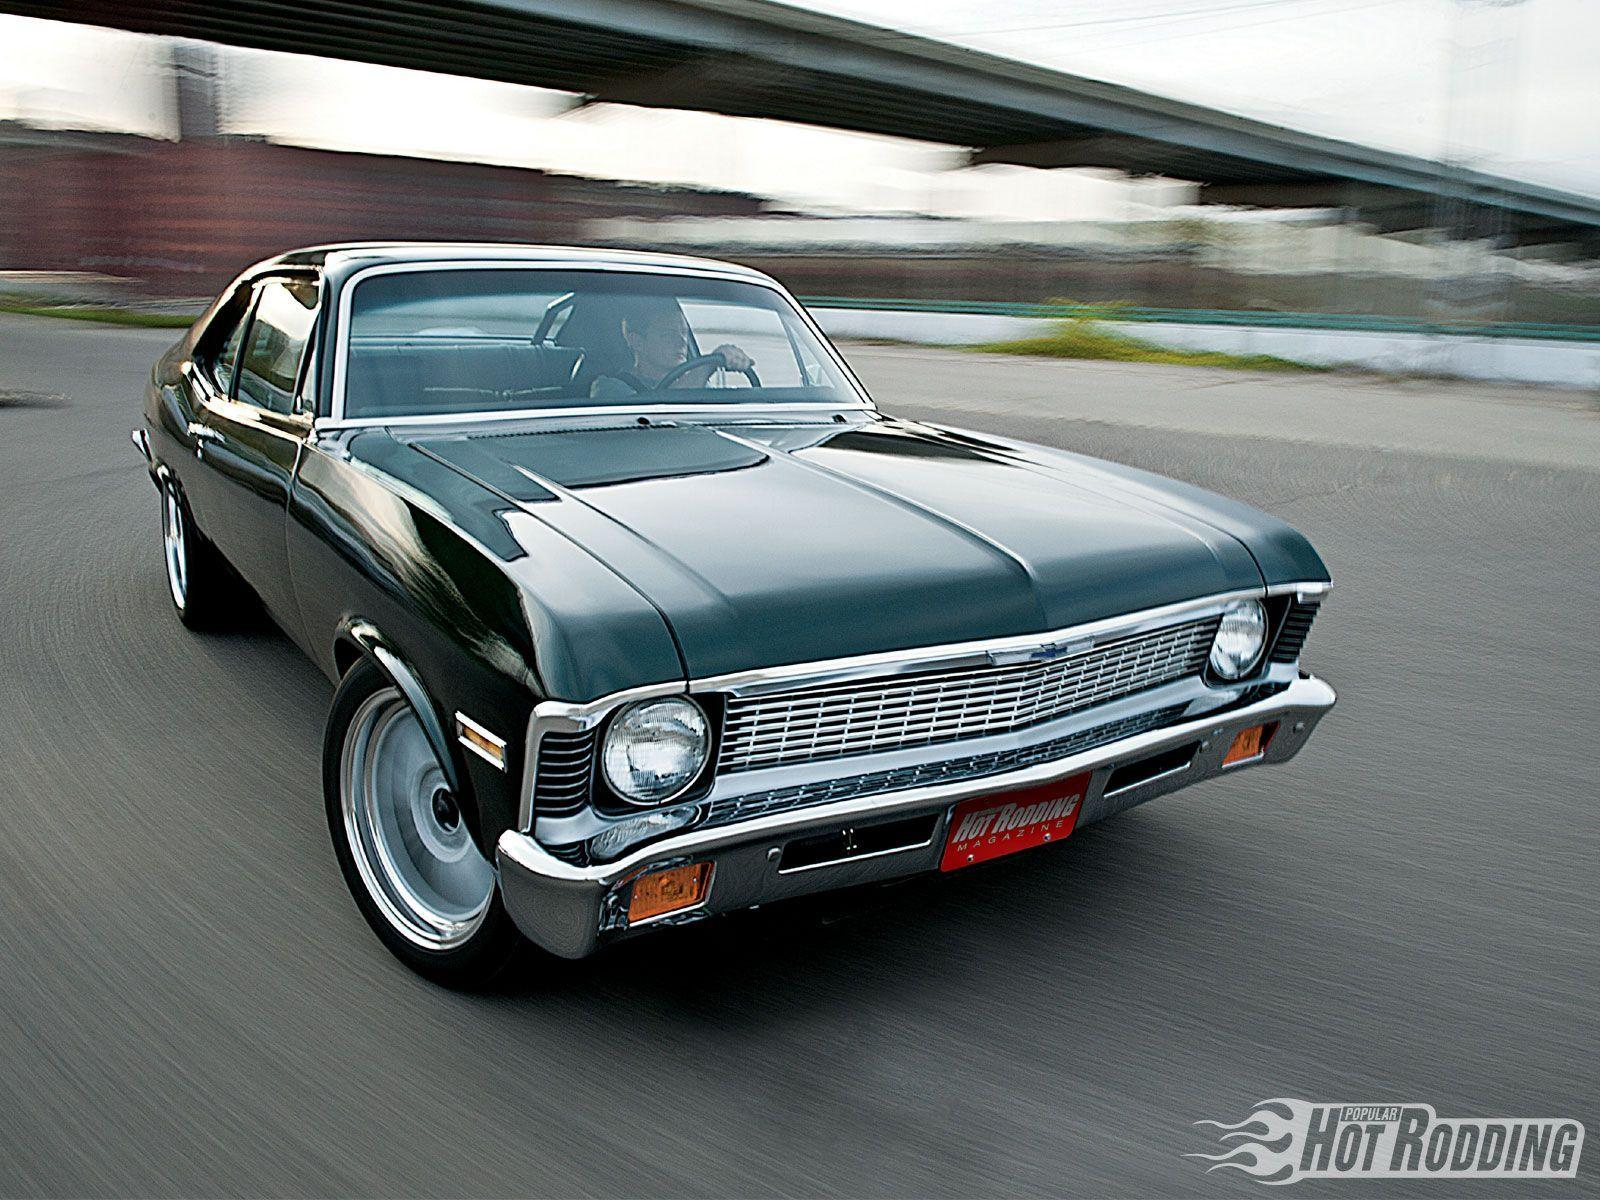 71 Chevy Nova Wallpapers Wallpaper Cave